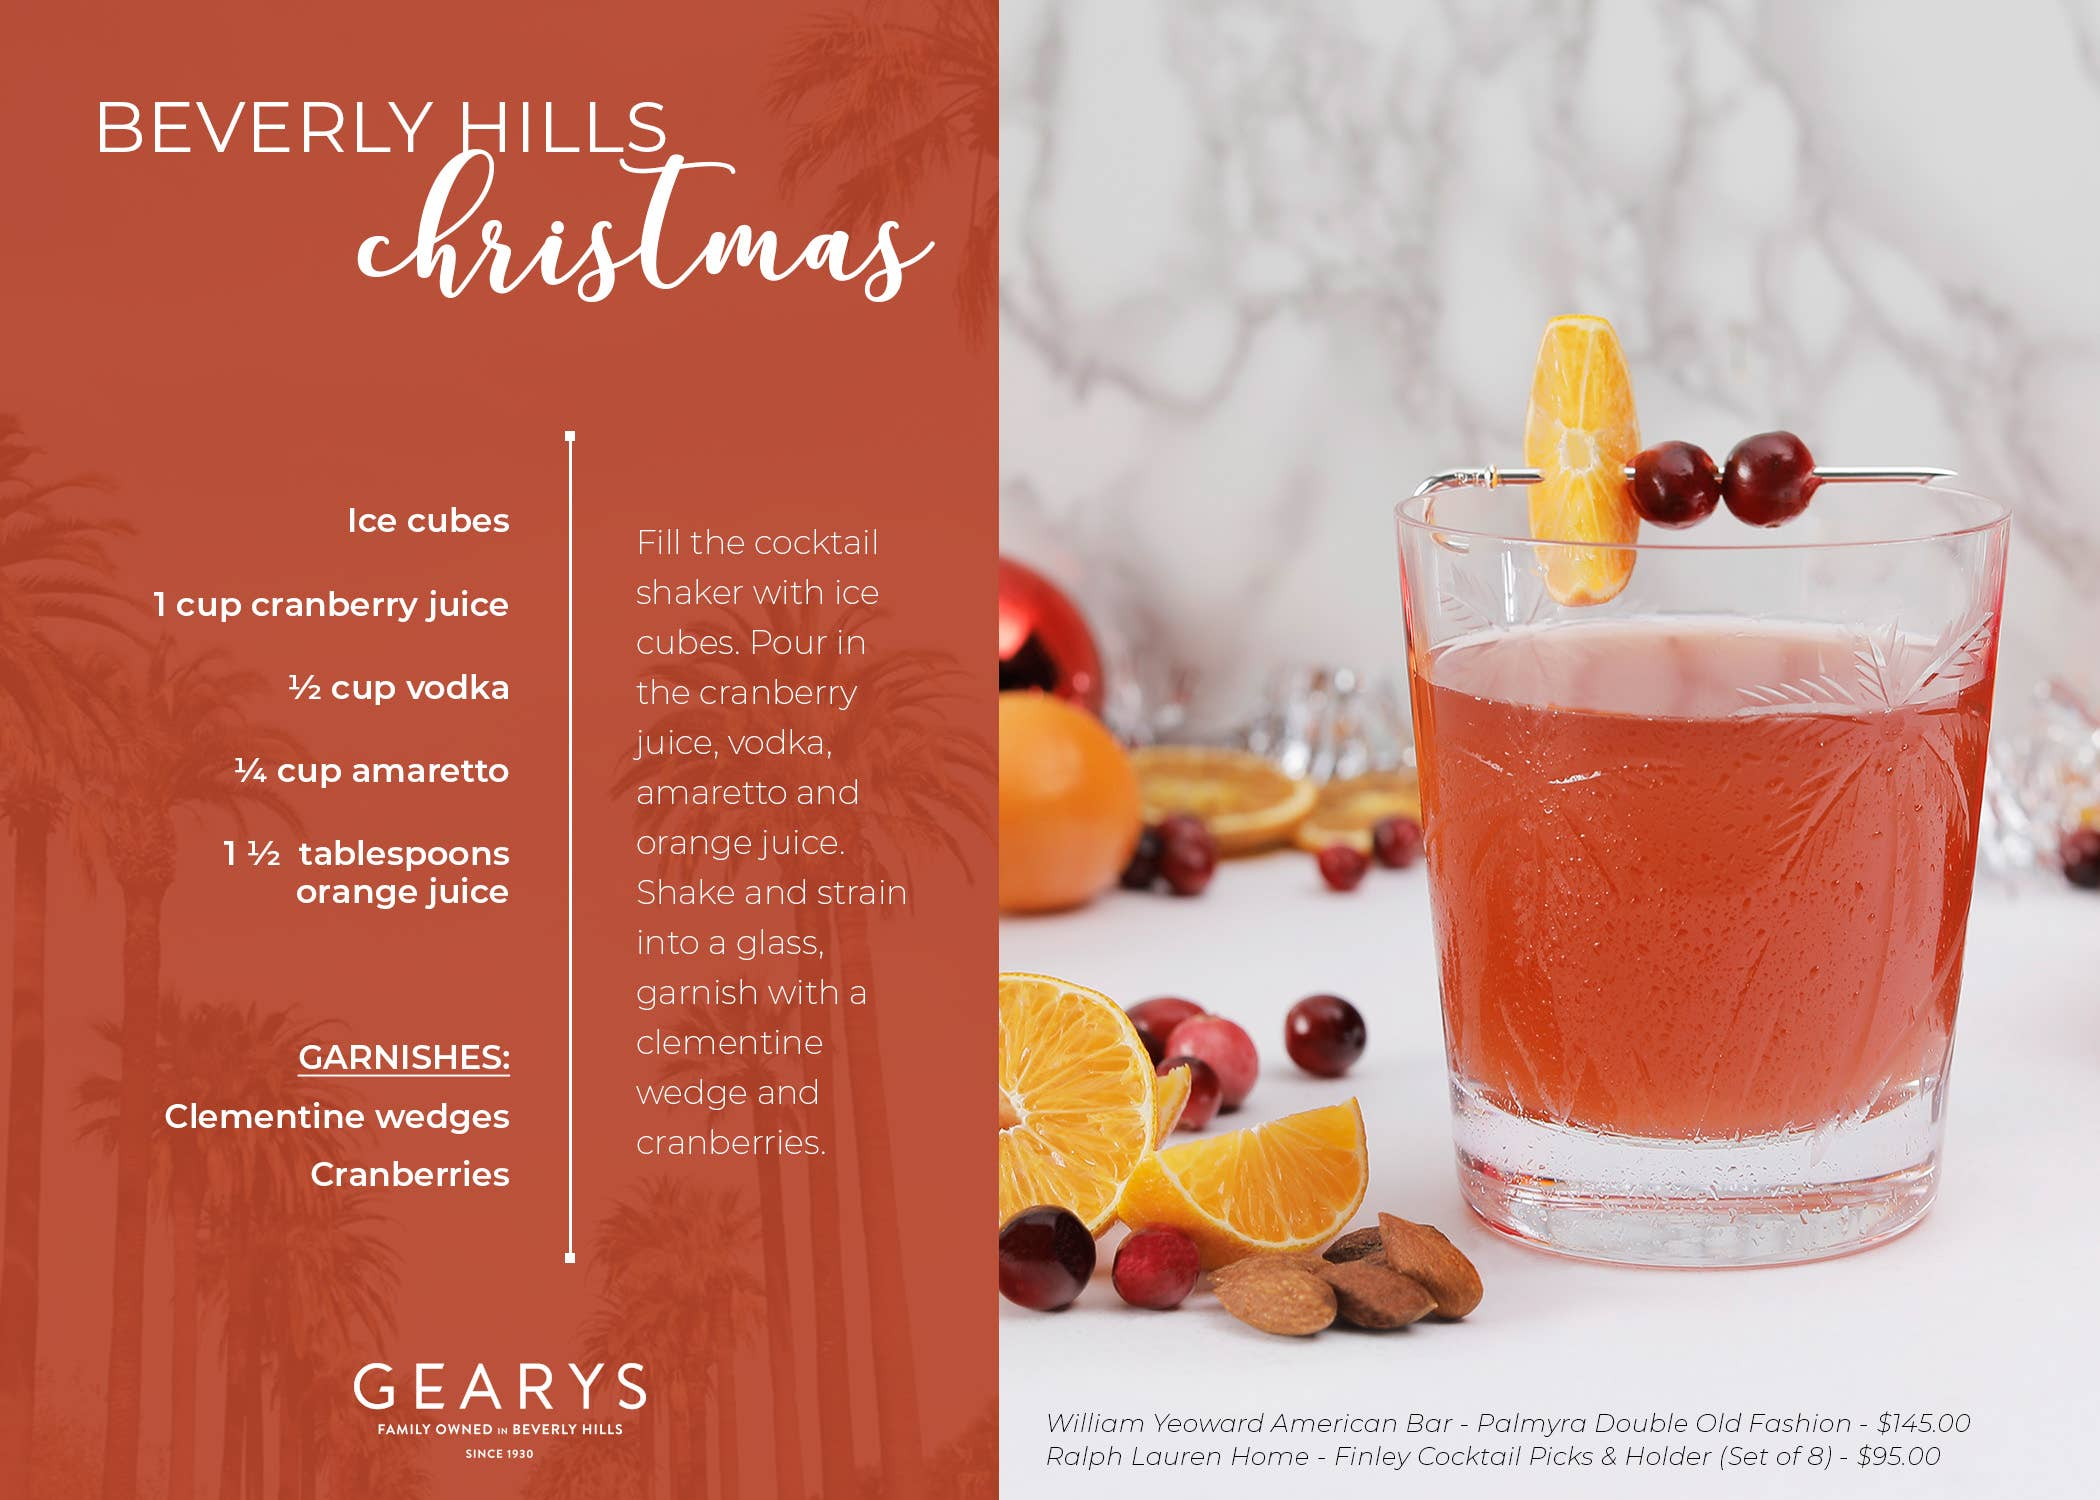 The Beverly Hills Christmas cocktail recipe card